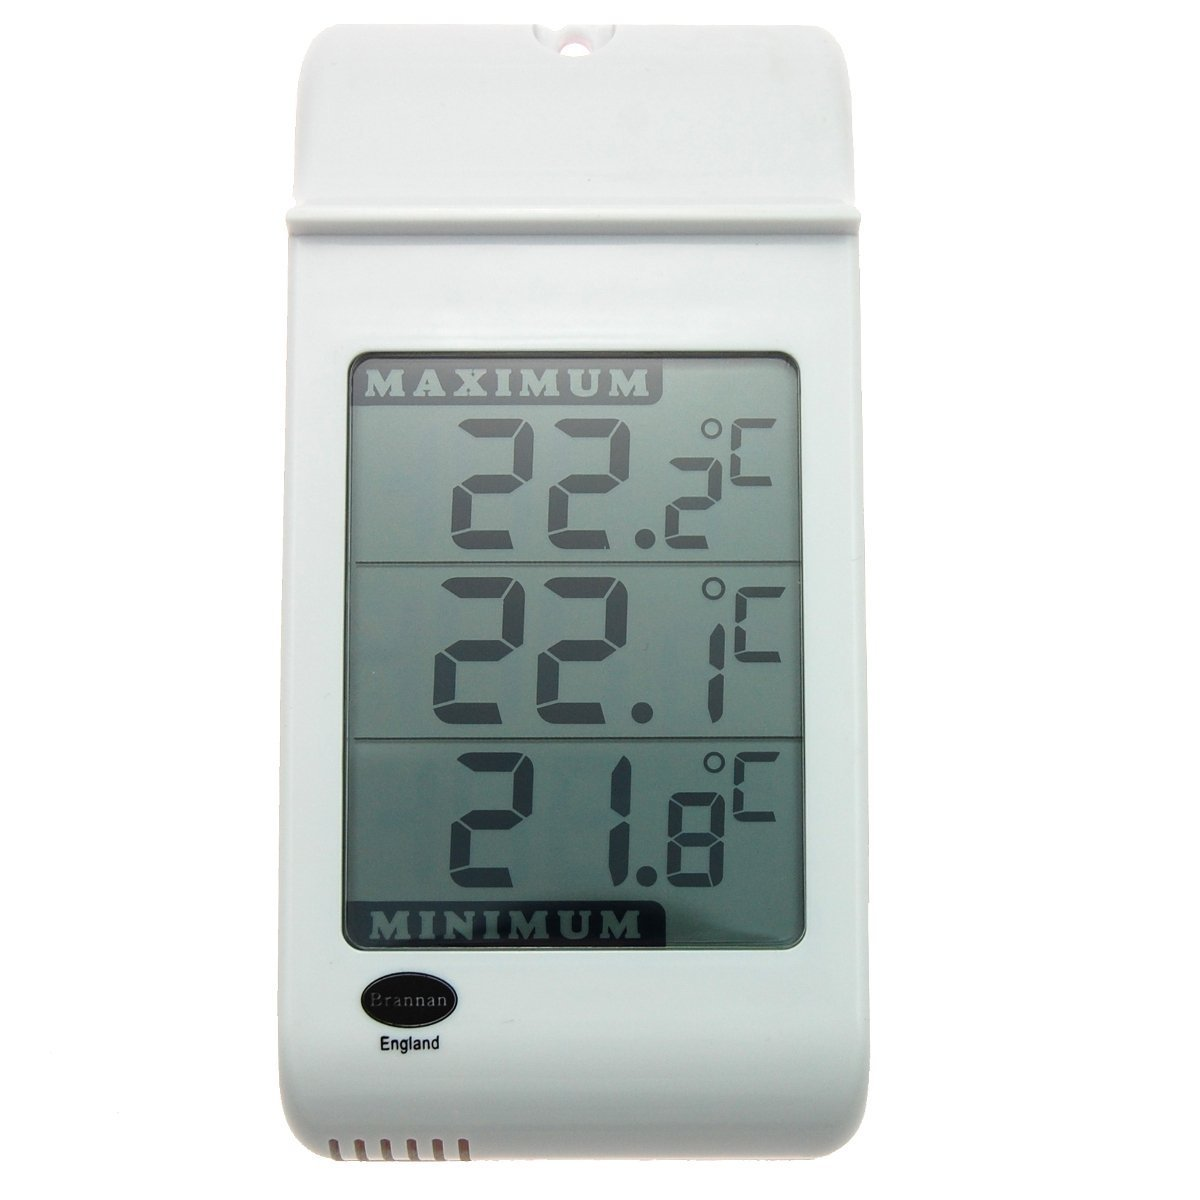 Digital Max Min Thermometer With Large Display in White Garden Greenhouse Growroom Brannan 12/426/3